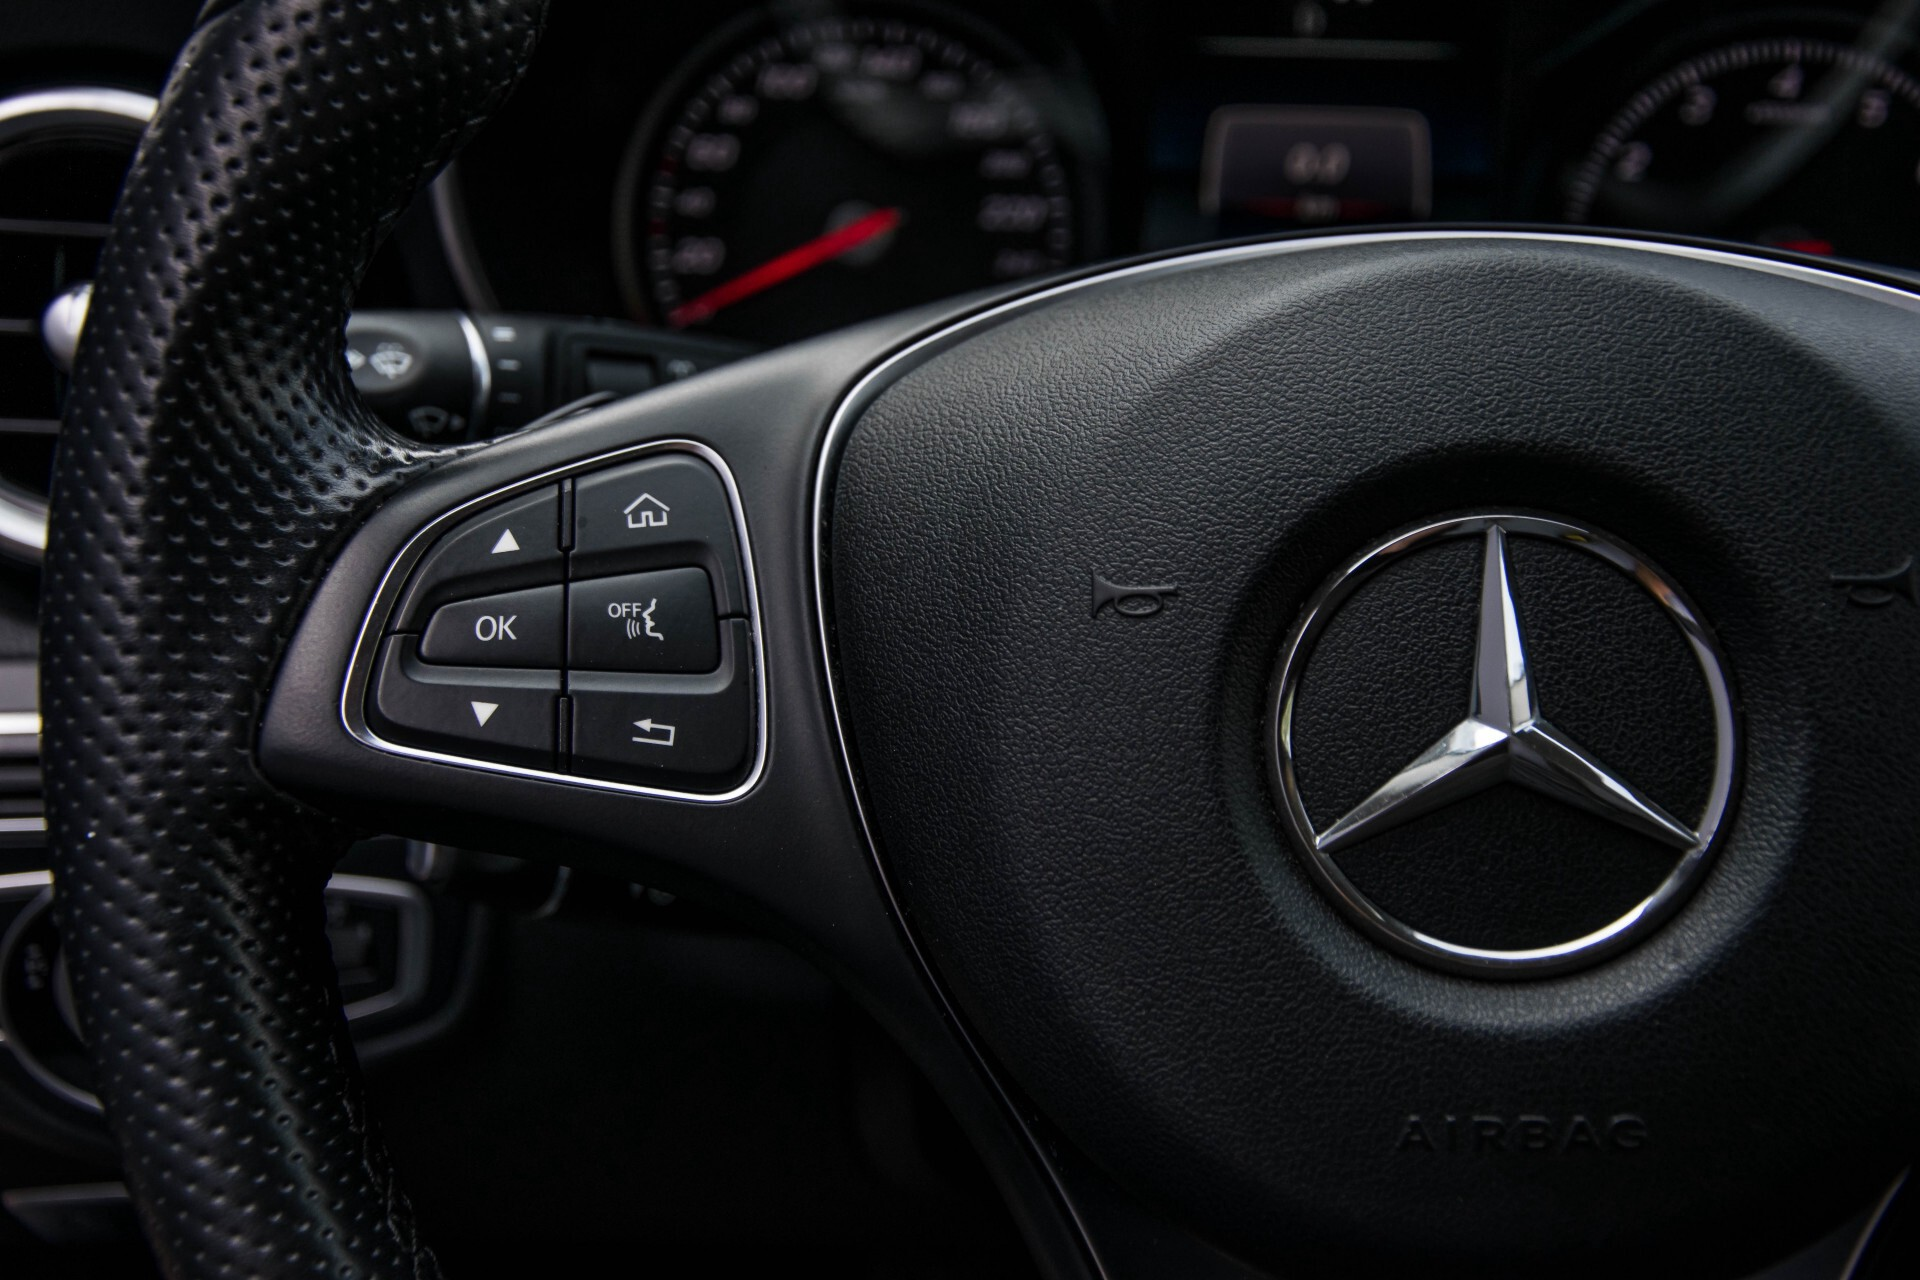 Mercedes-Benz C-Klasse Estate 180 Avantgarde LED/Navi/Privacyglas/Pts/Aut-koffer Aut7 Foto 9